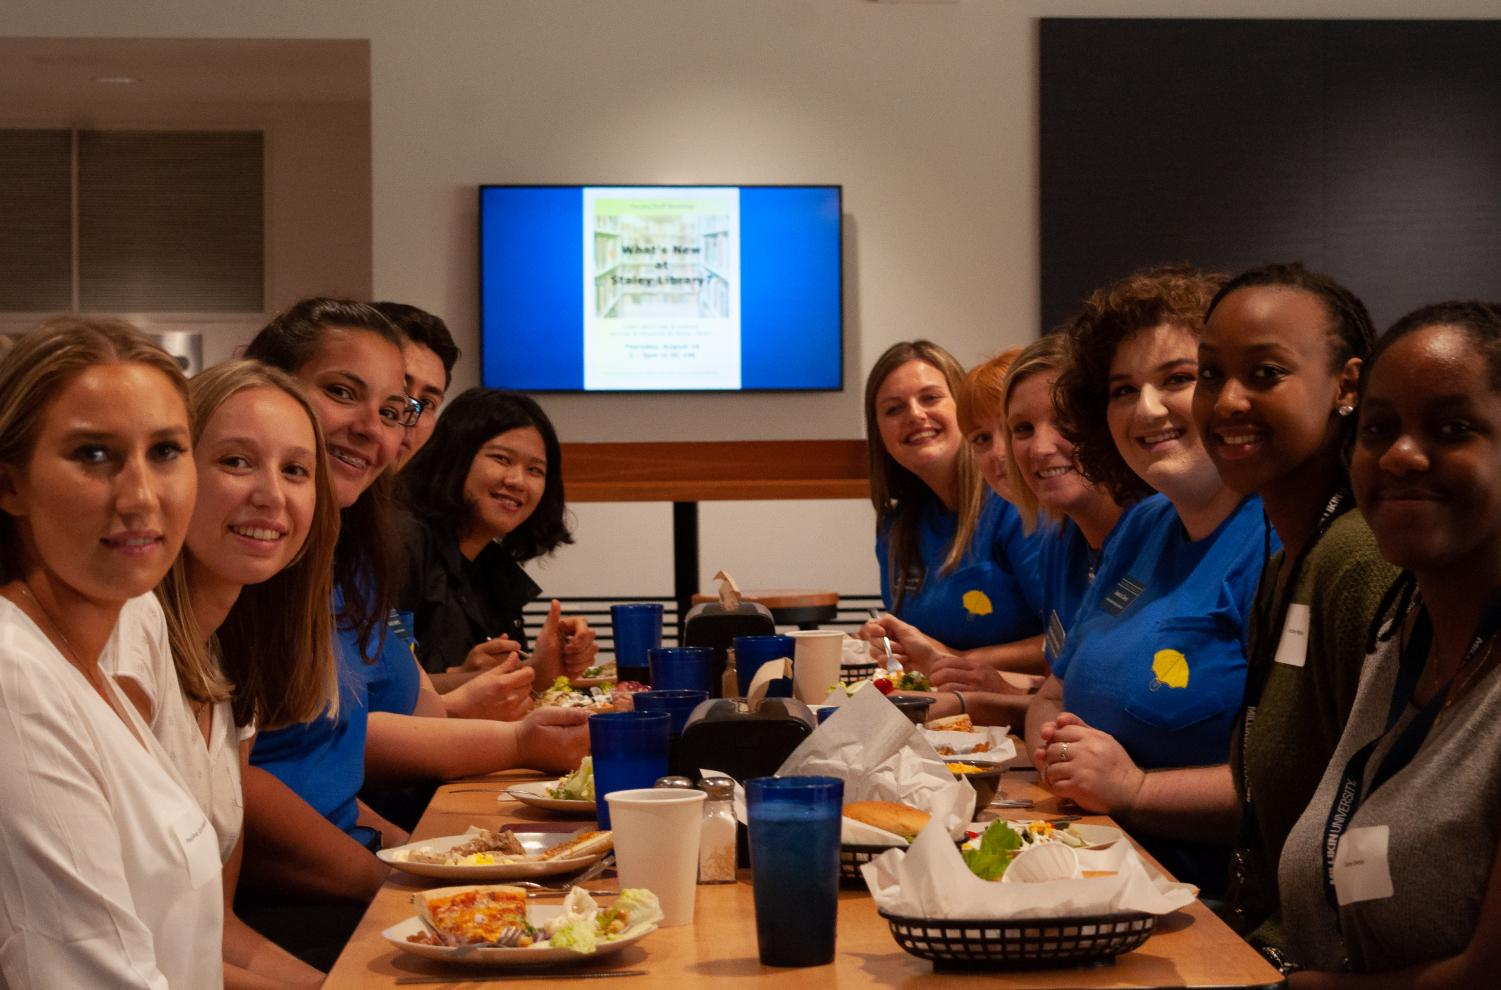 New International Students enjoy dinner with FYEMs for the first time at Millikin in the cafeteria.